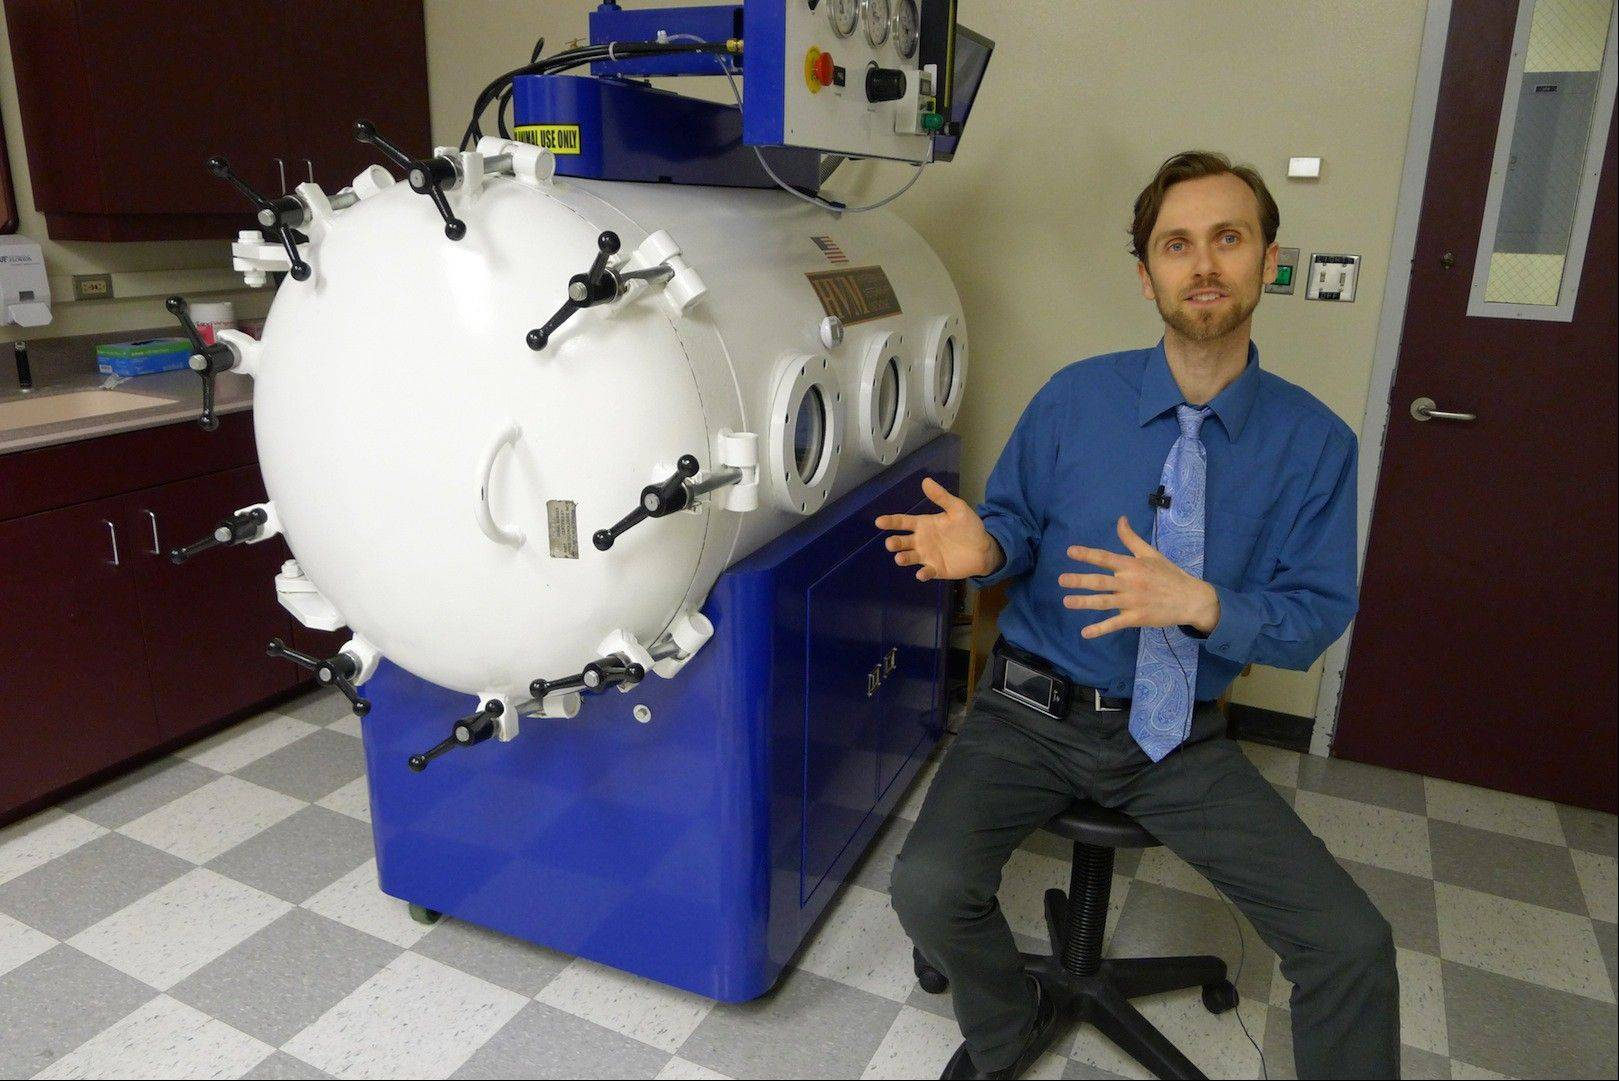 Dr. Justin Shmalberg, a veterinarian and professor at the University's of Florida's College of Veterinary Medicine, says that hyperbaric oxygen chambers are being used to treat inflammation, wounds and other conditions in pets.